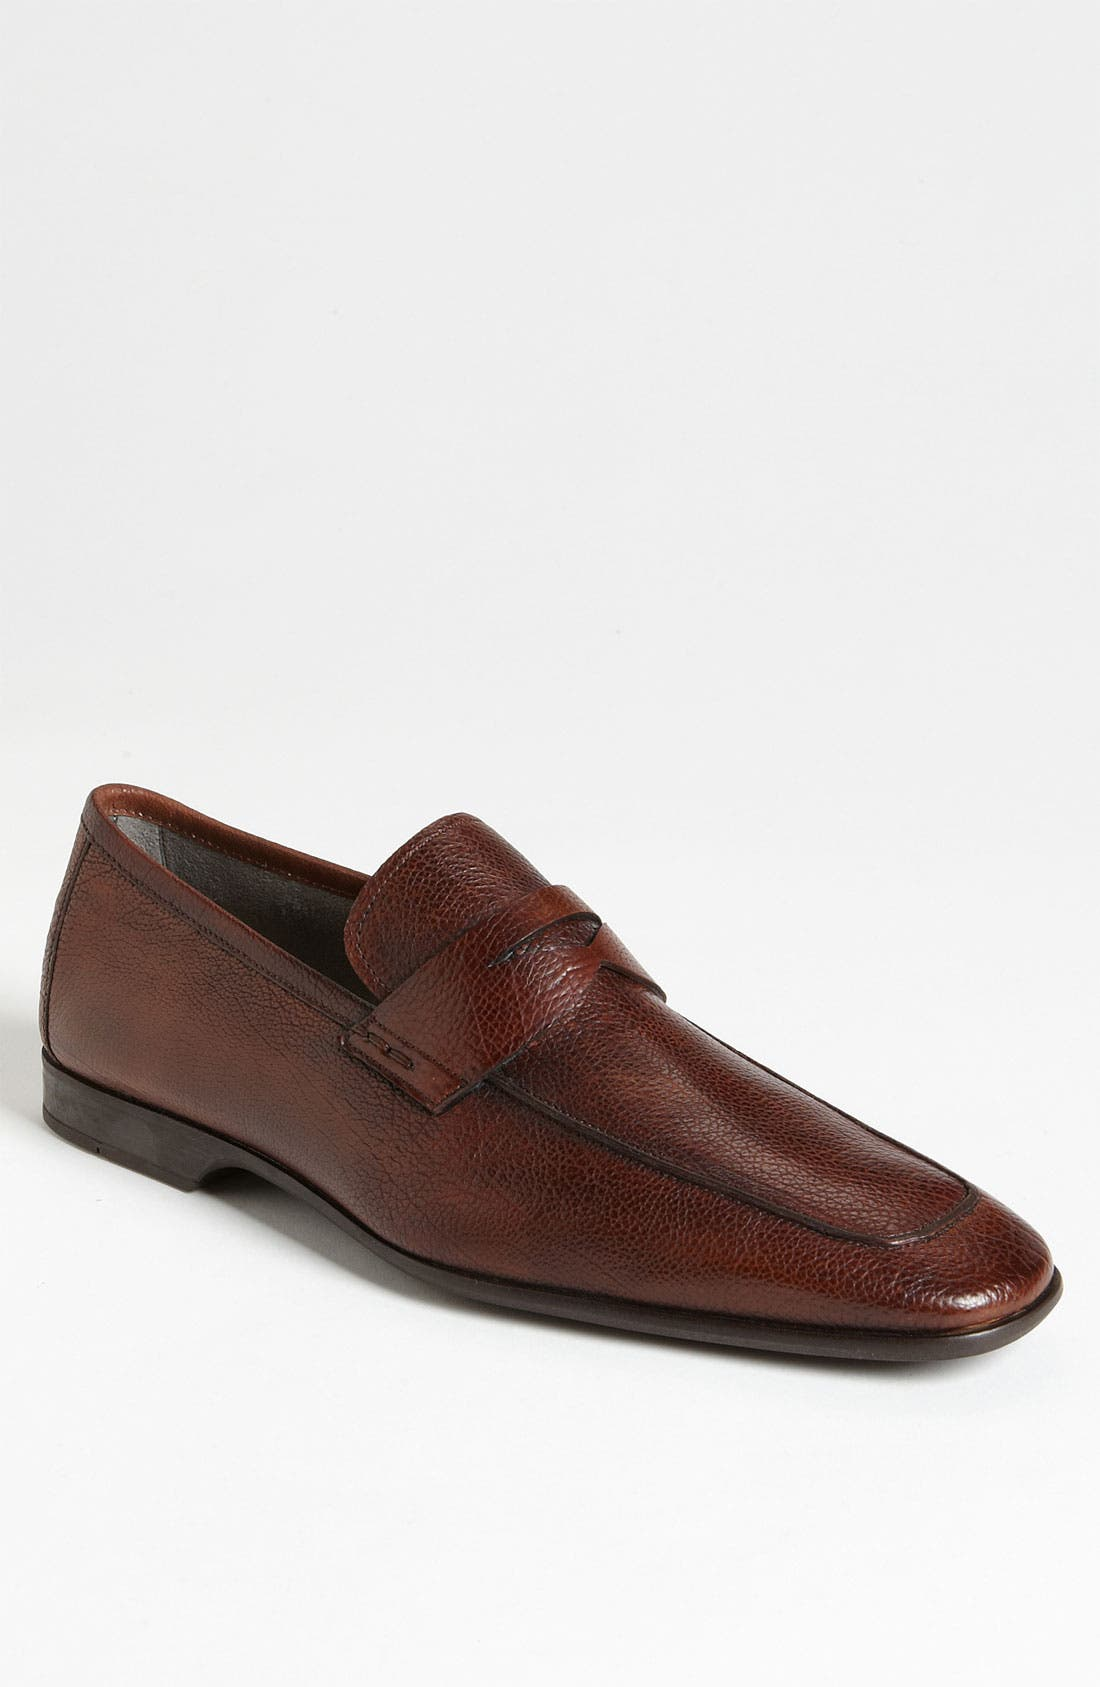 Main Image - Magnanni 'Pablo' Penny Loafer